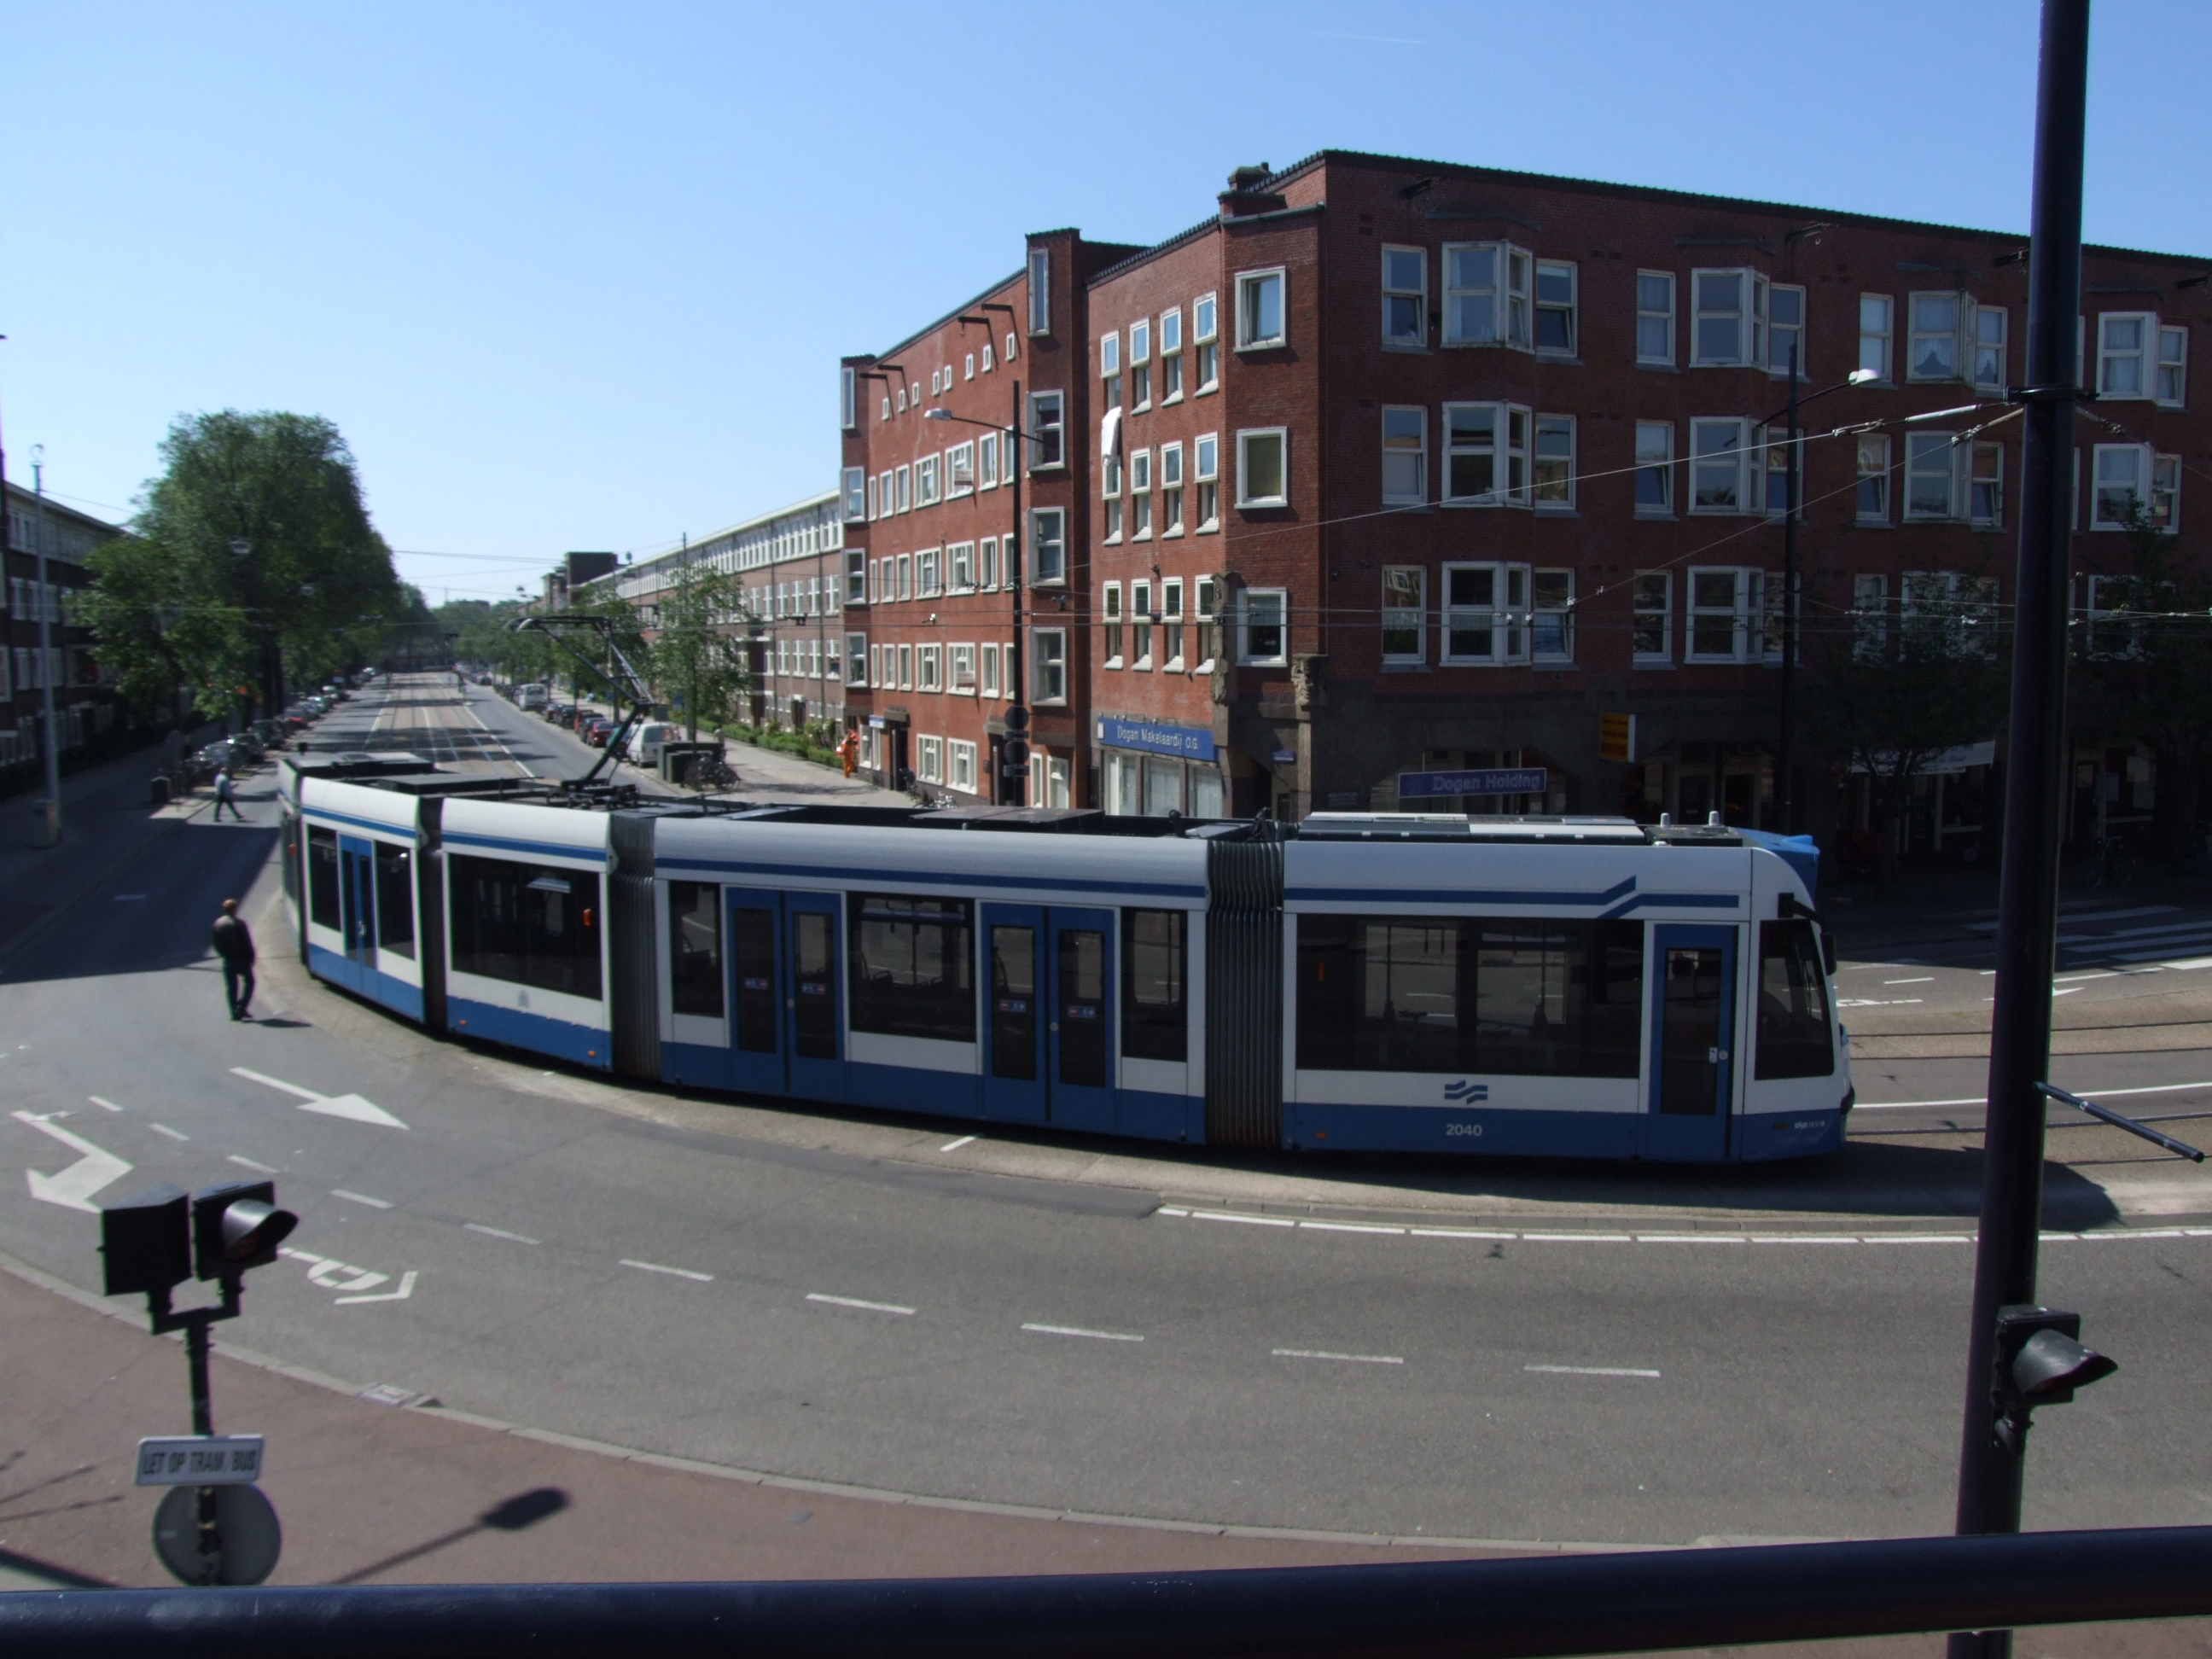 7: Tram 5008, Brüssel (Brussels) is from the Museum in Amsterdam. -  Mercatorplain.